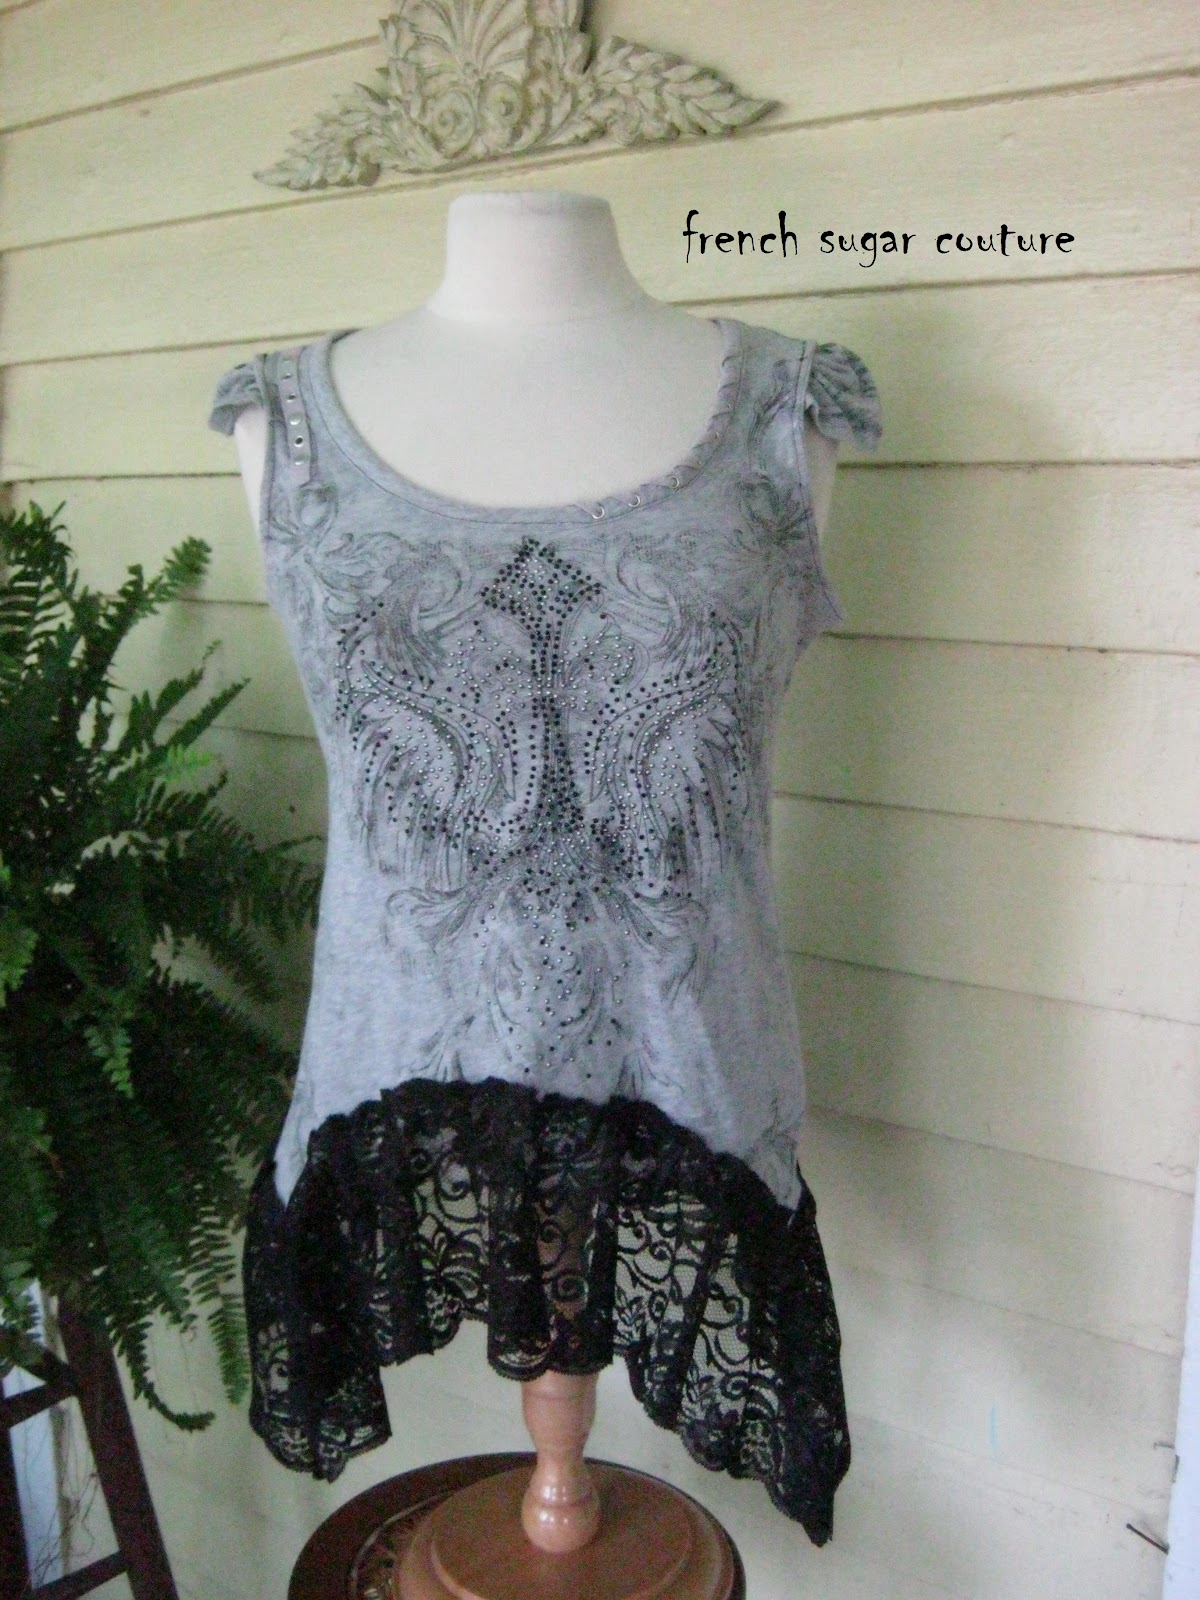 French sugar couture french sugar parisian new upcycled for French couture